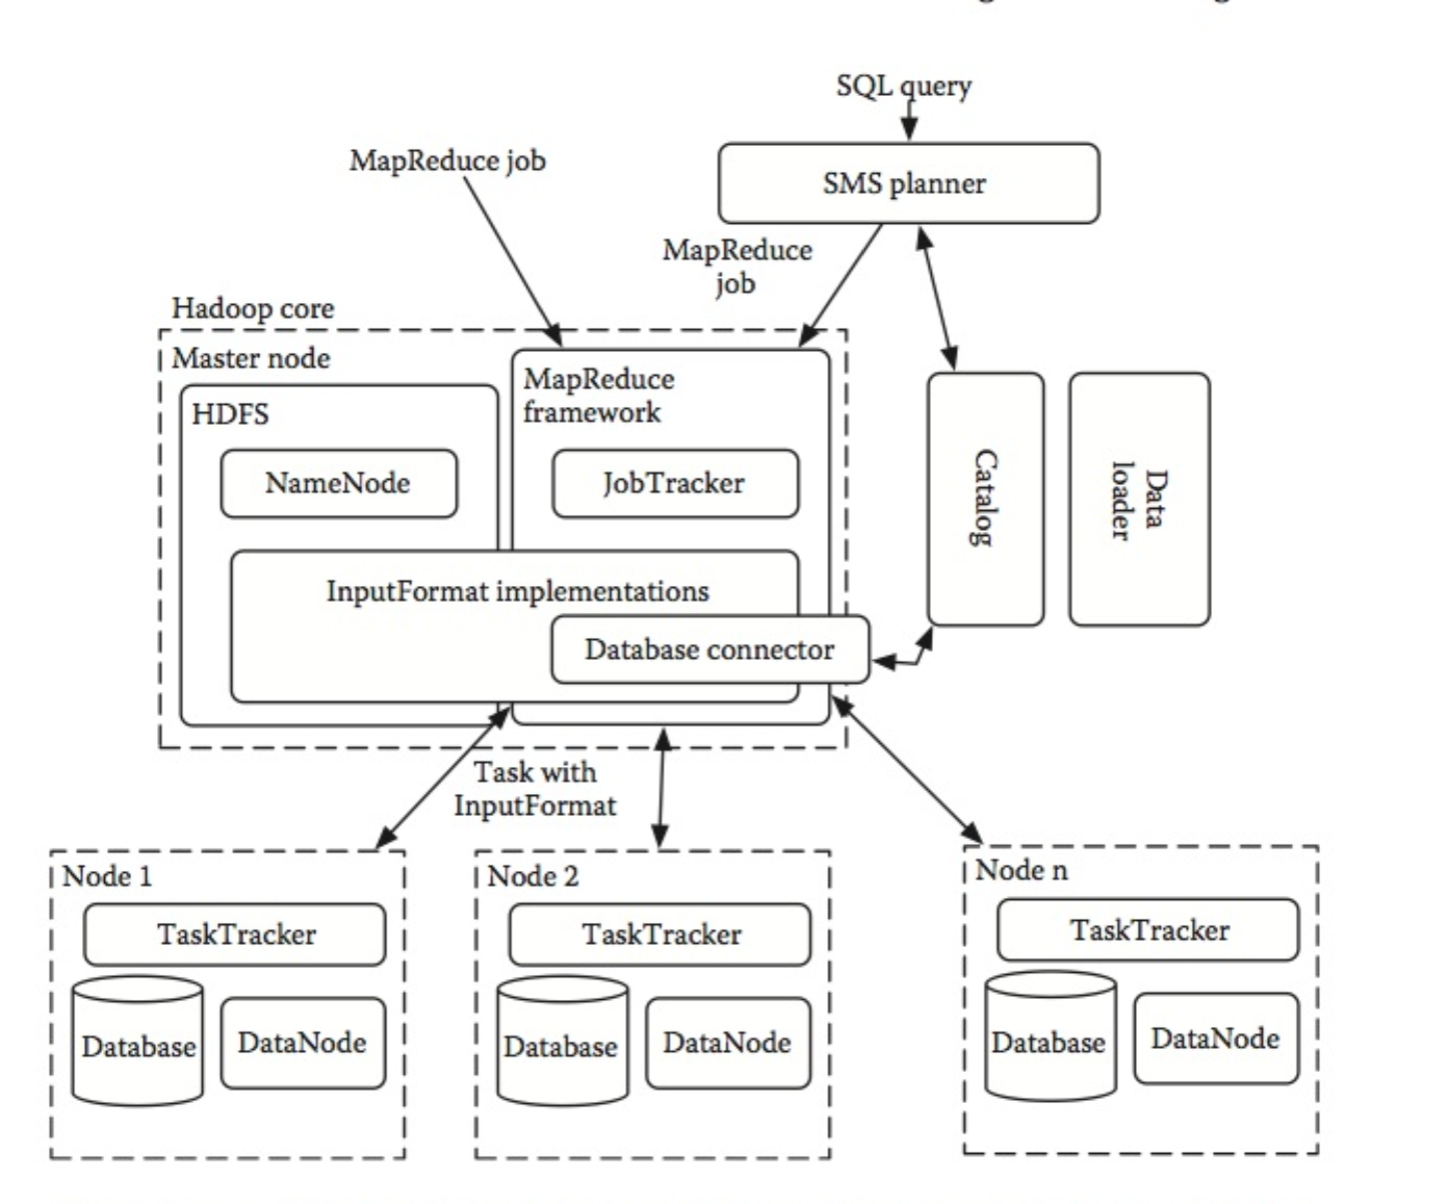 How to manage large-scale datasets with Hadoop and MapReduce